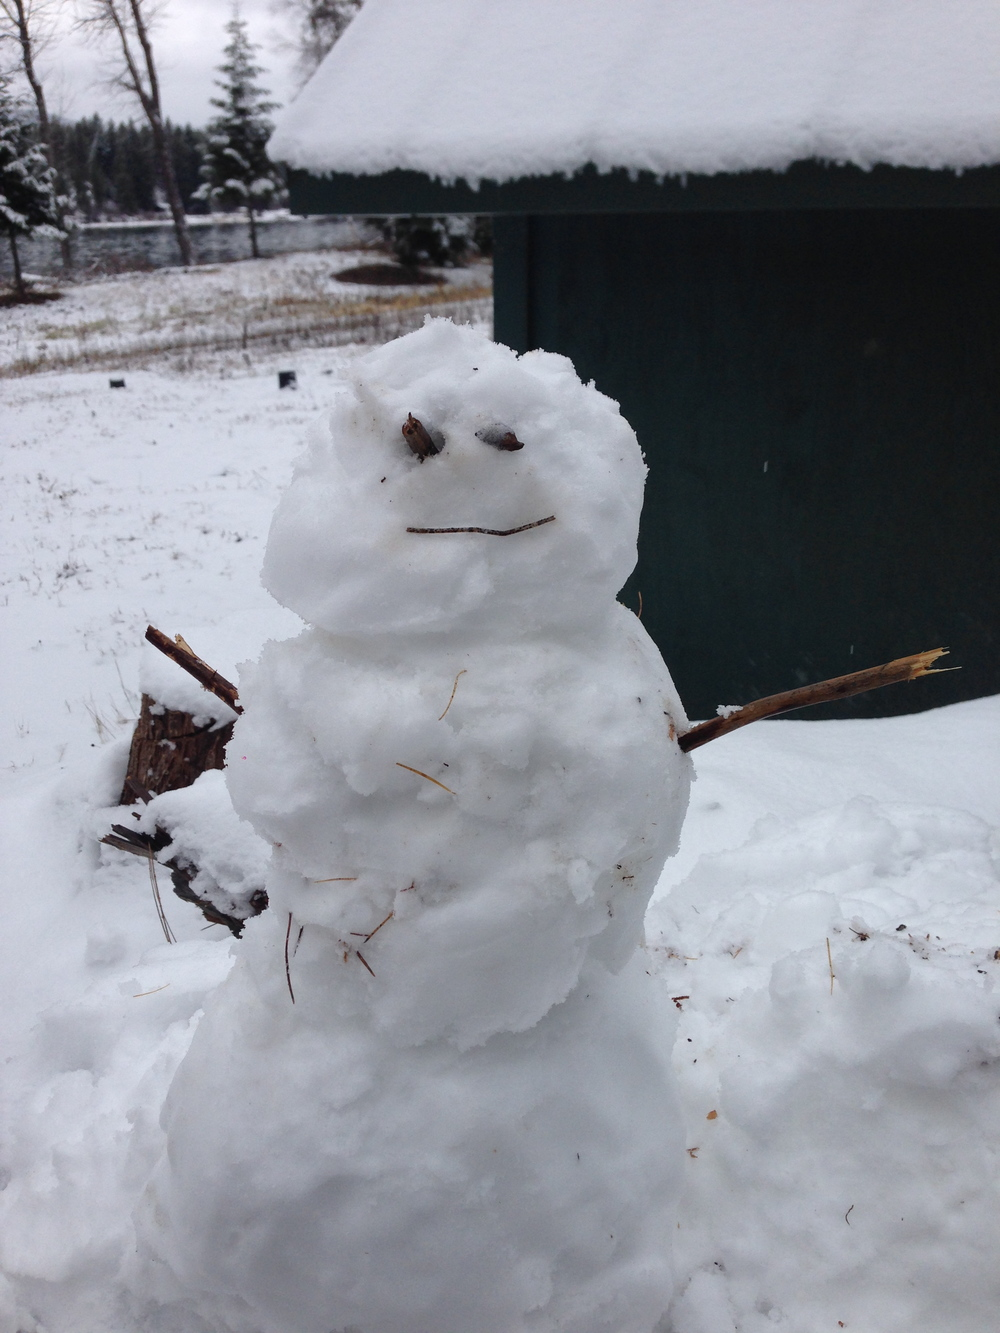 It's not the best snowman ever made, but I think he's cute.